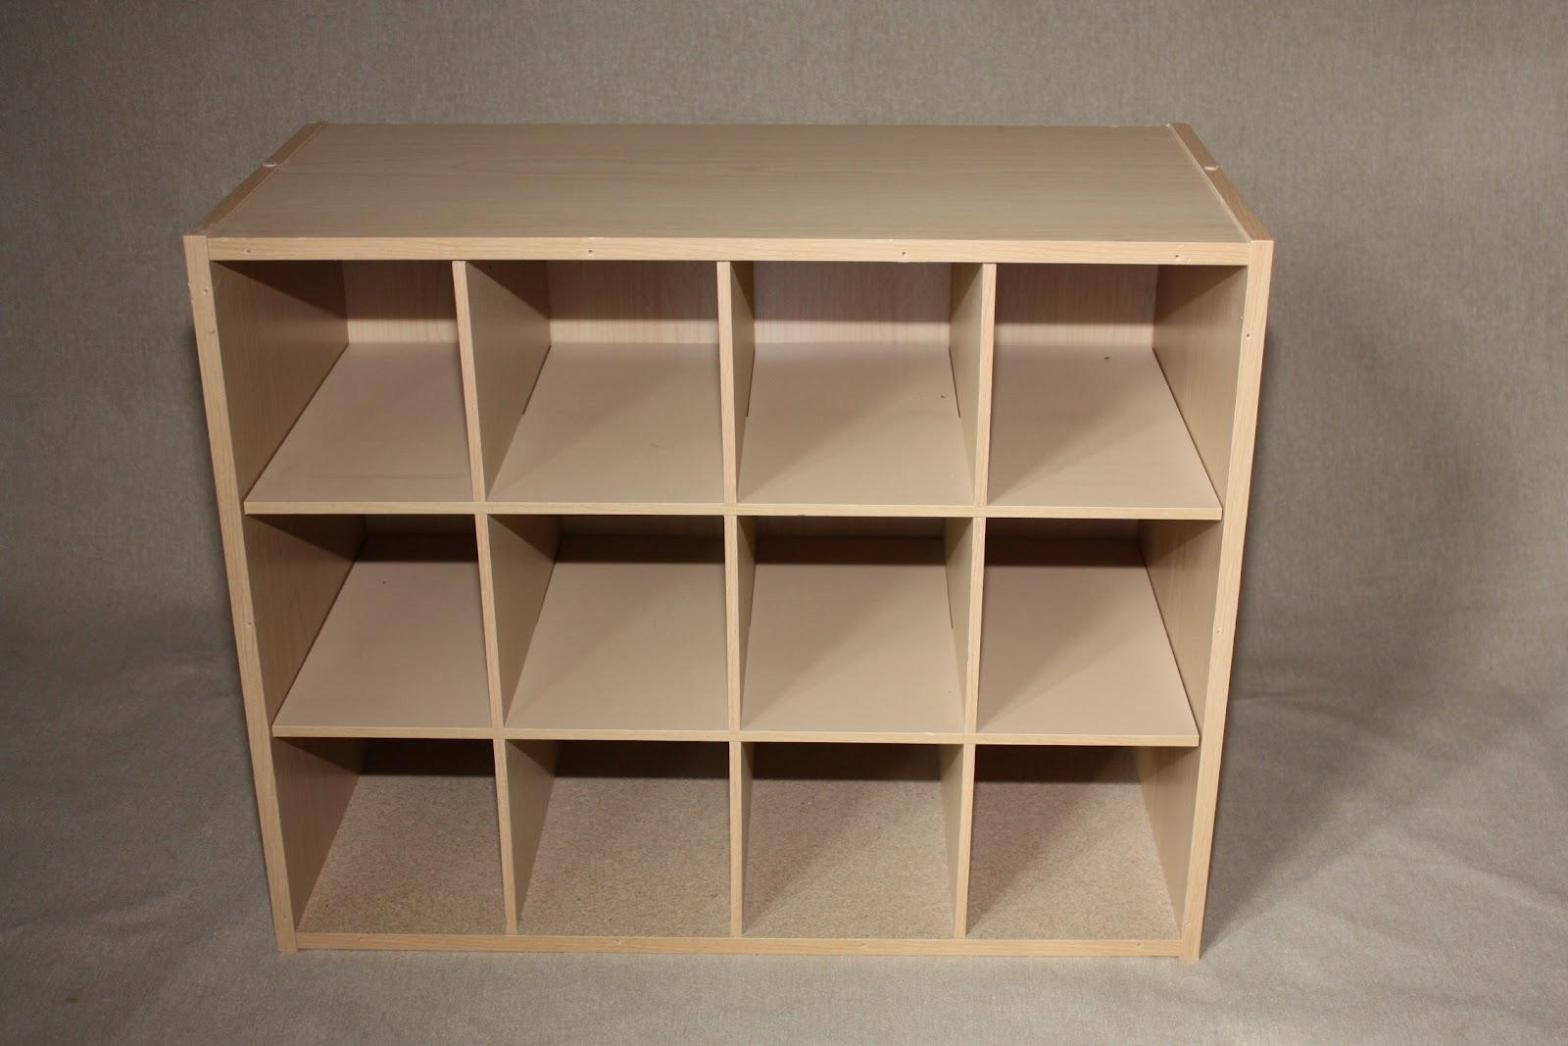 Cube Shelving Unit Wood Doherty House Storage Designs Cube Throughout Wooden  Shelving Units (#5